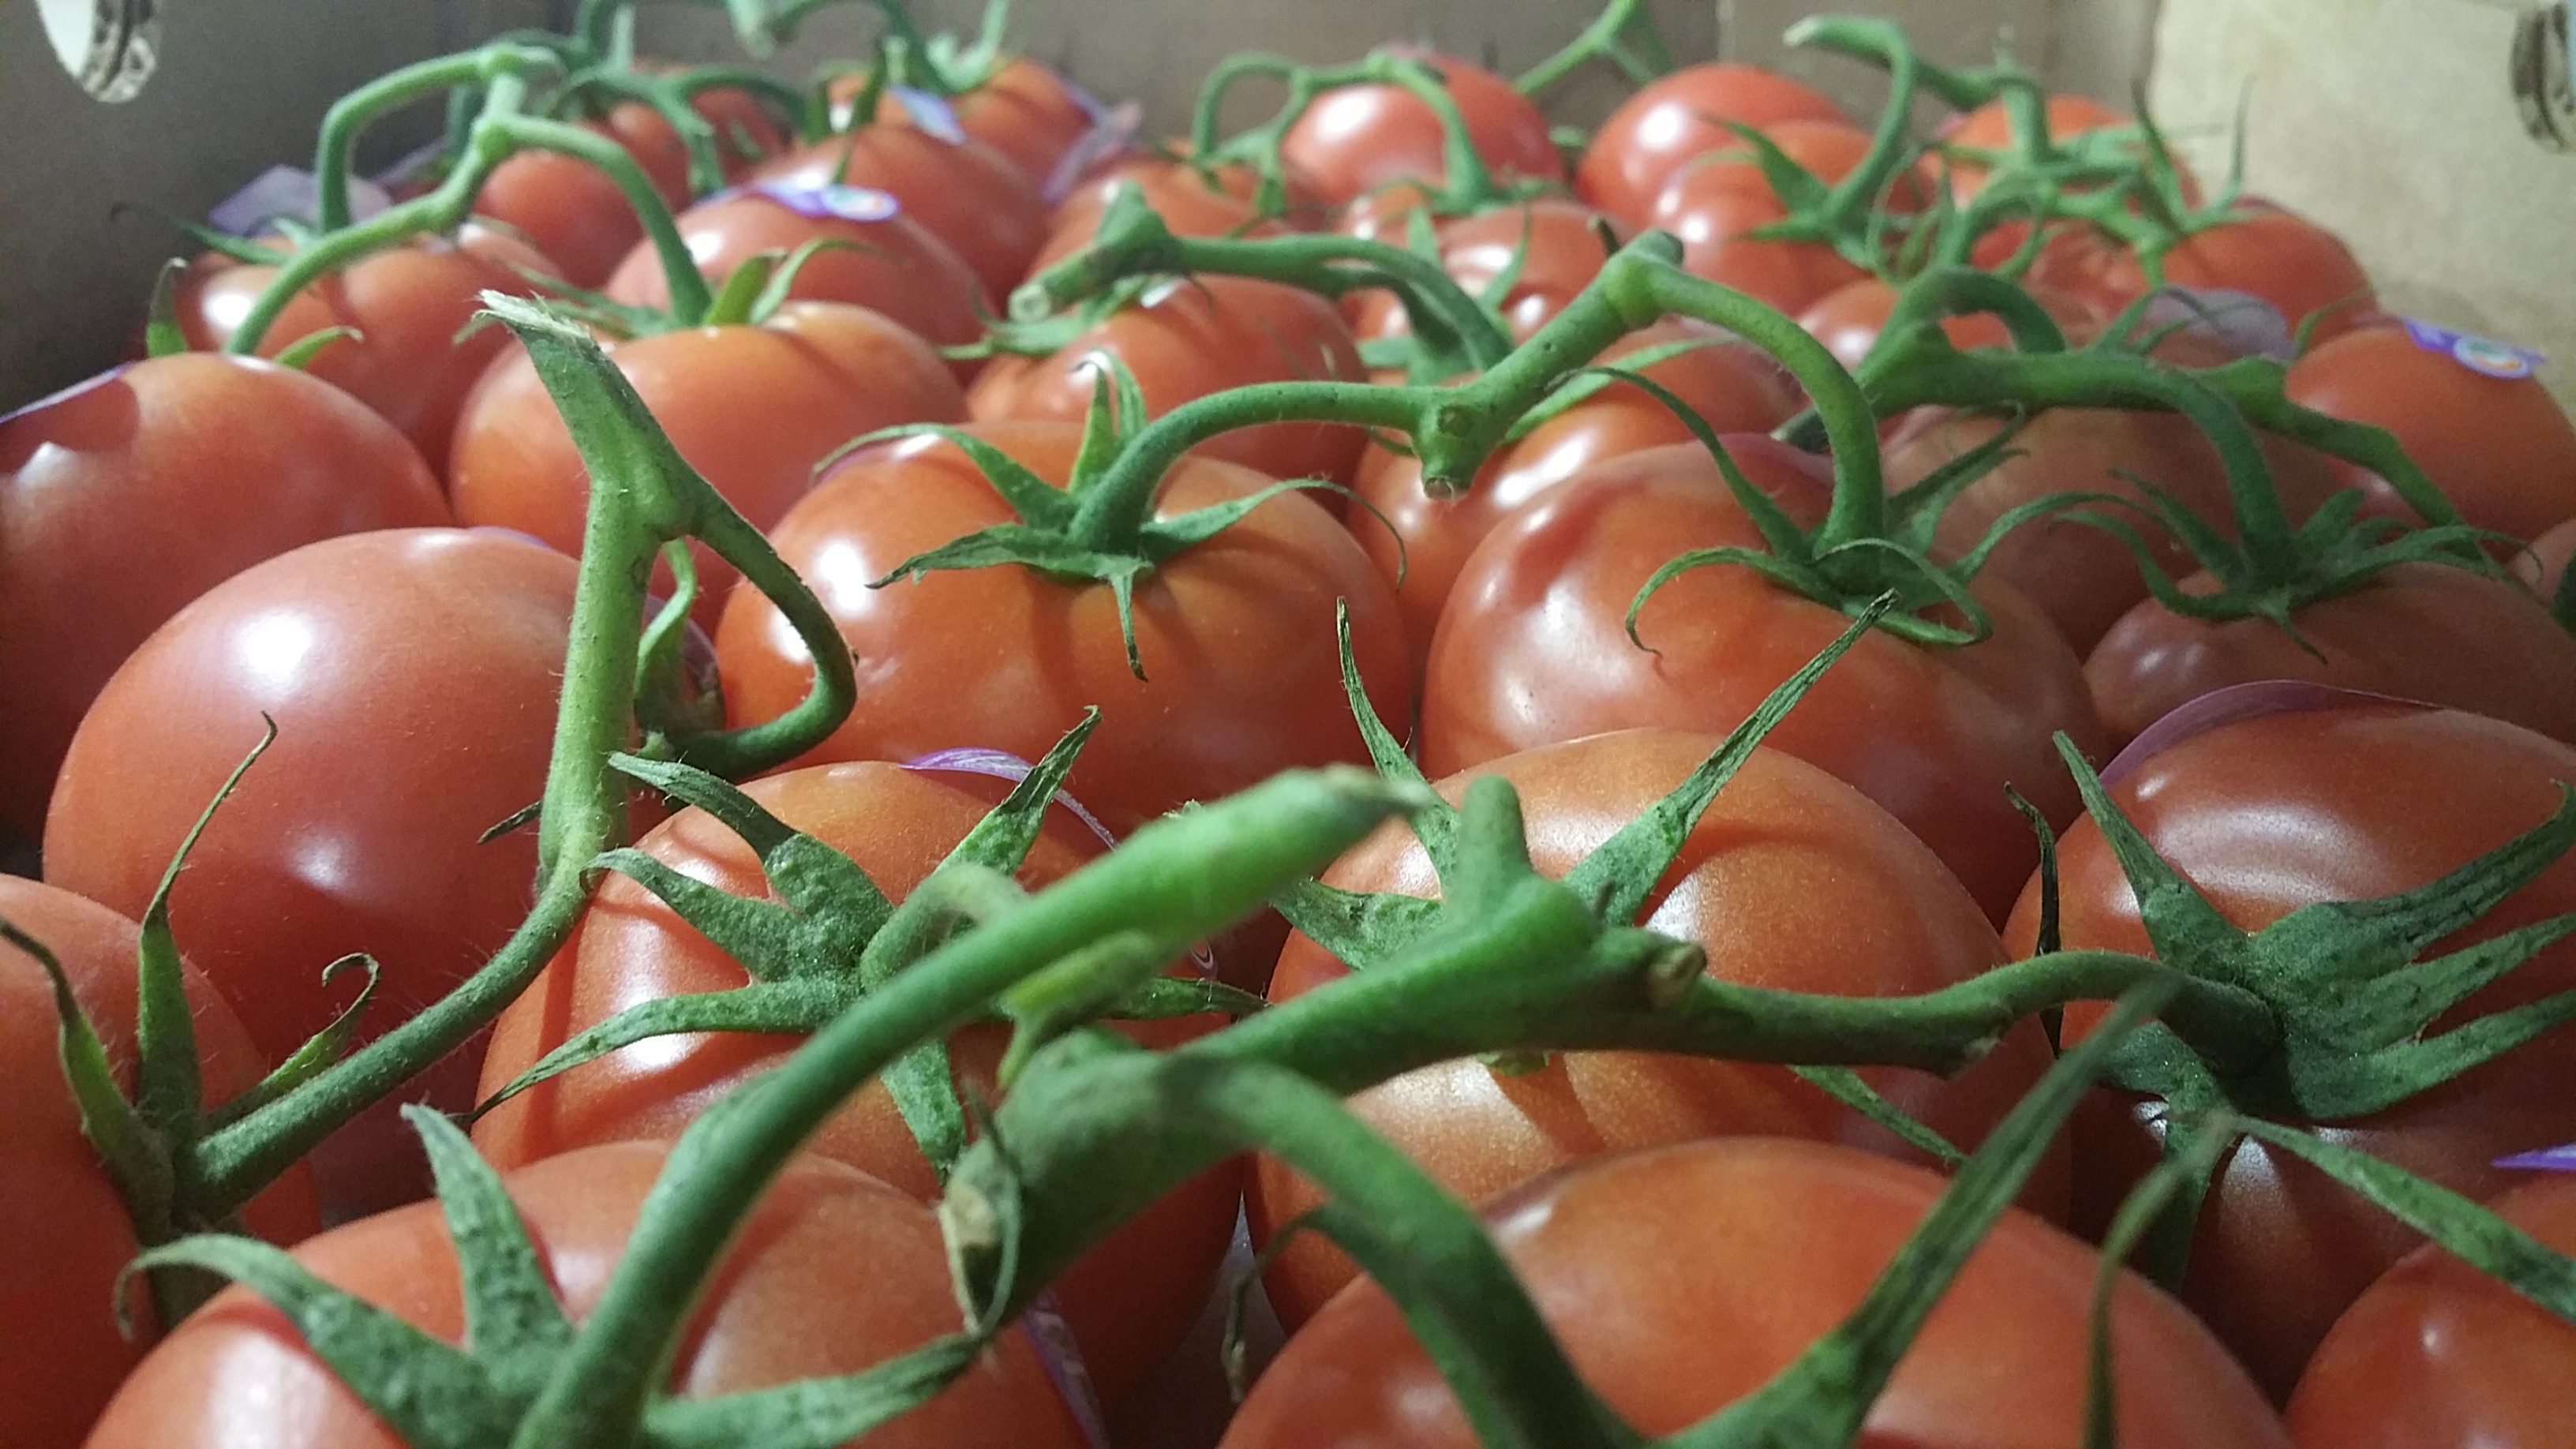 Tomato Vegetable Or Fruit  Is a Tomato a Fruit or a Ve able Find out Here